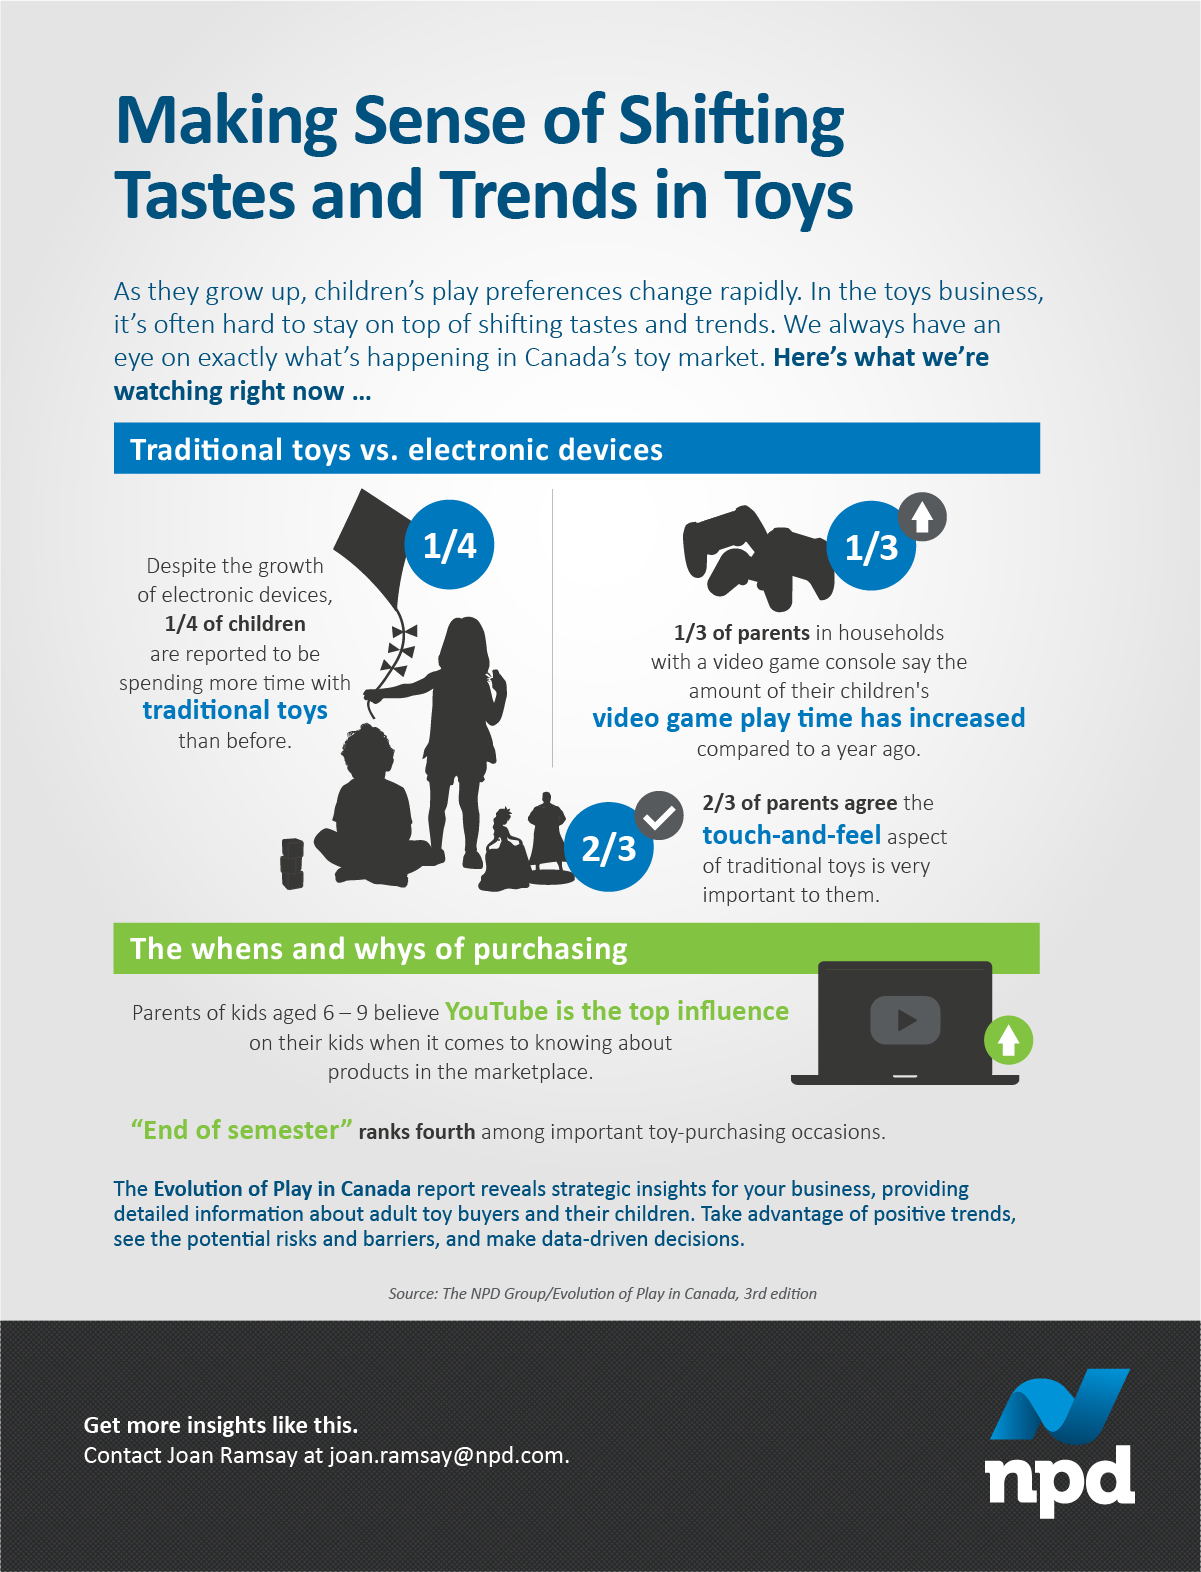 Even as electronics flood the market, a quarter of kids spend more time with traditional toys. How is playtime changing in Canada?